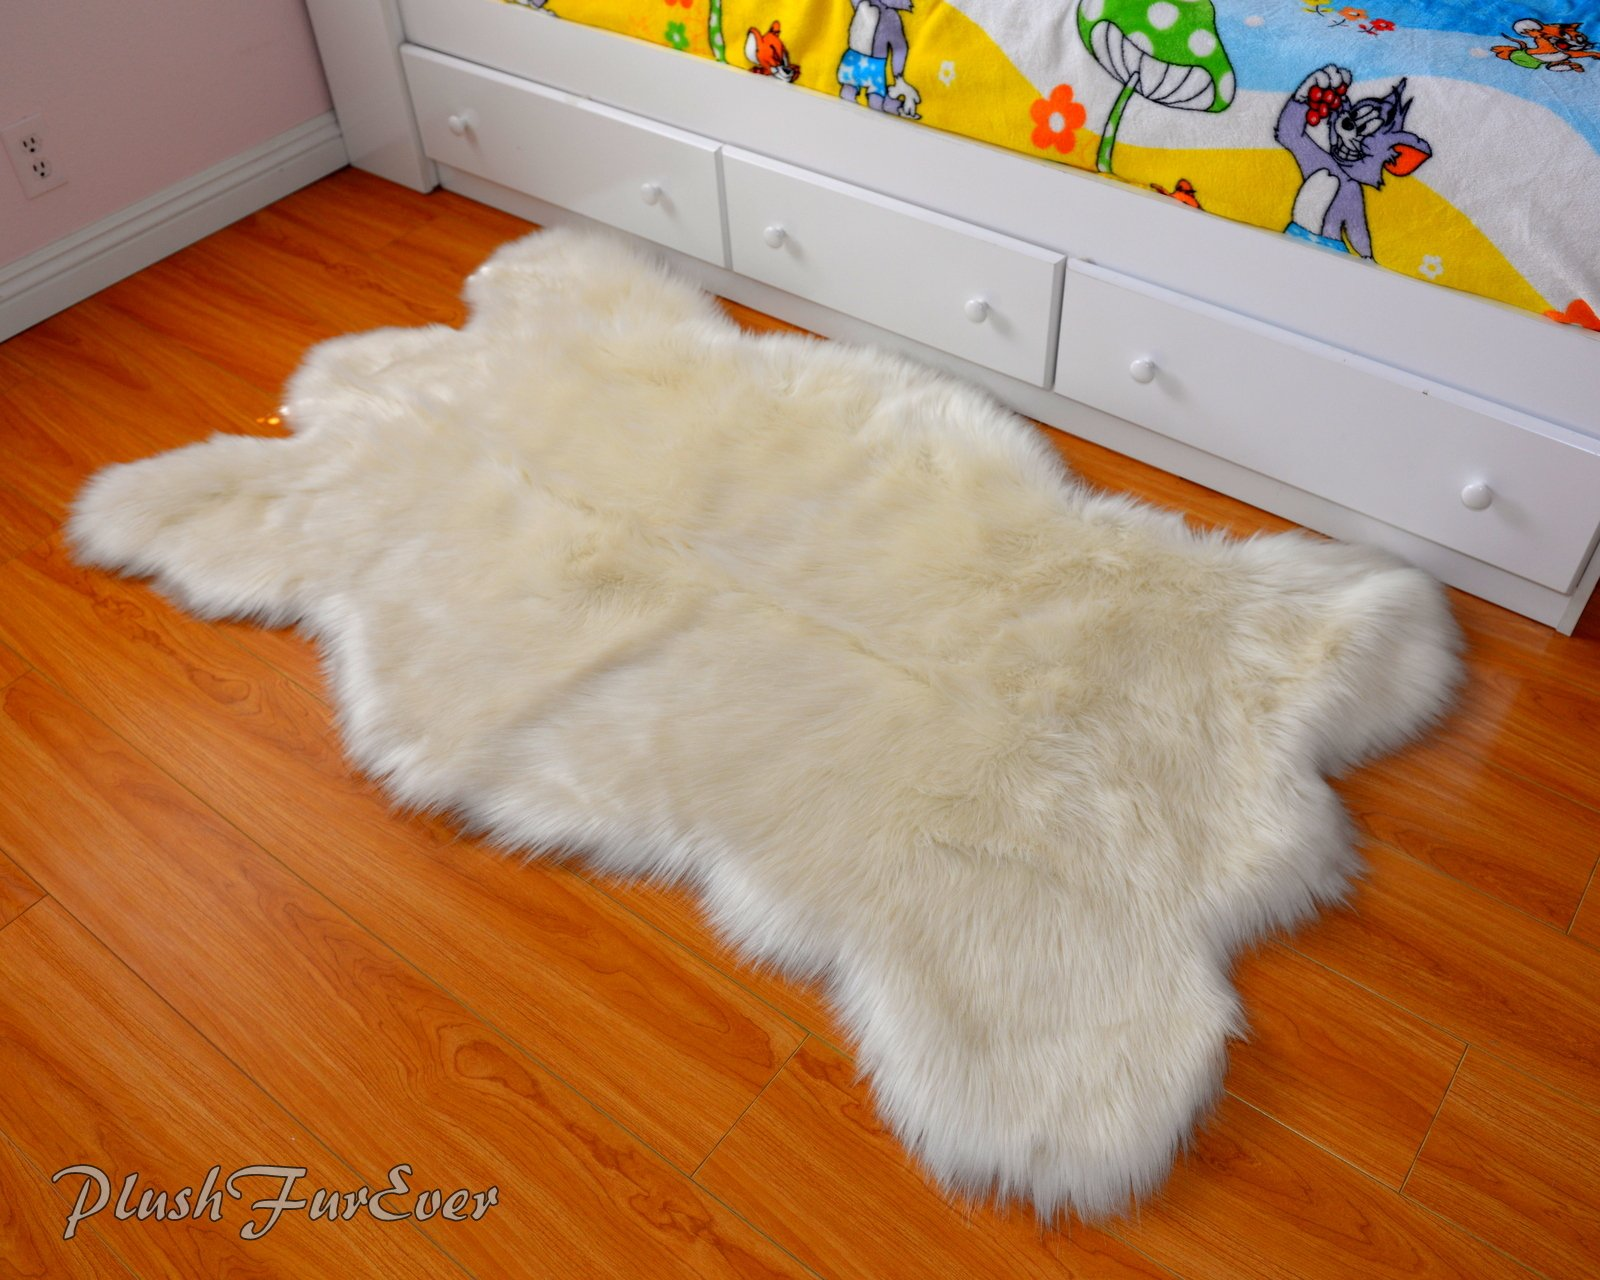 SC Love Collections Faux Fur Decors Off White Bearskin Pelt Shaggy Accent Lodge Cabin Area Rug (5' x 6' feet)